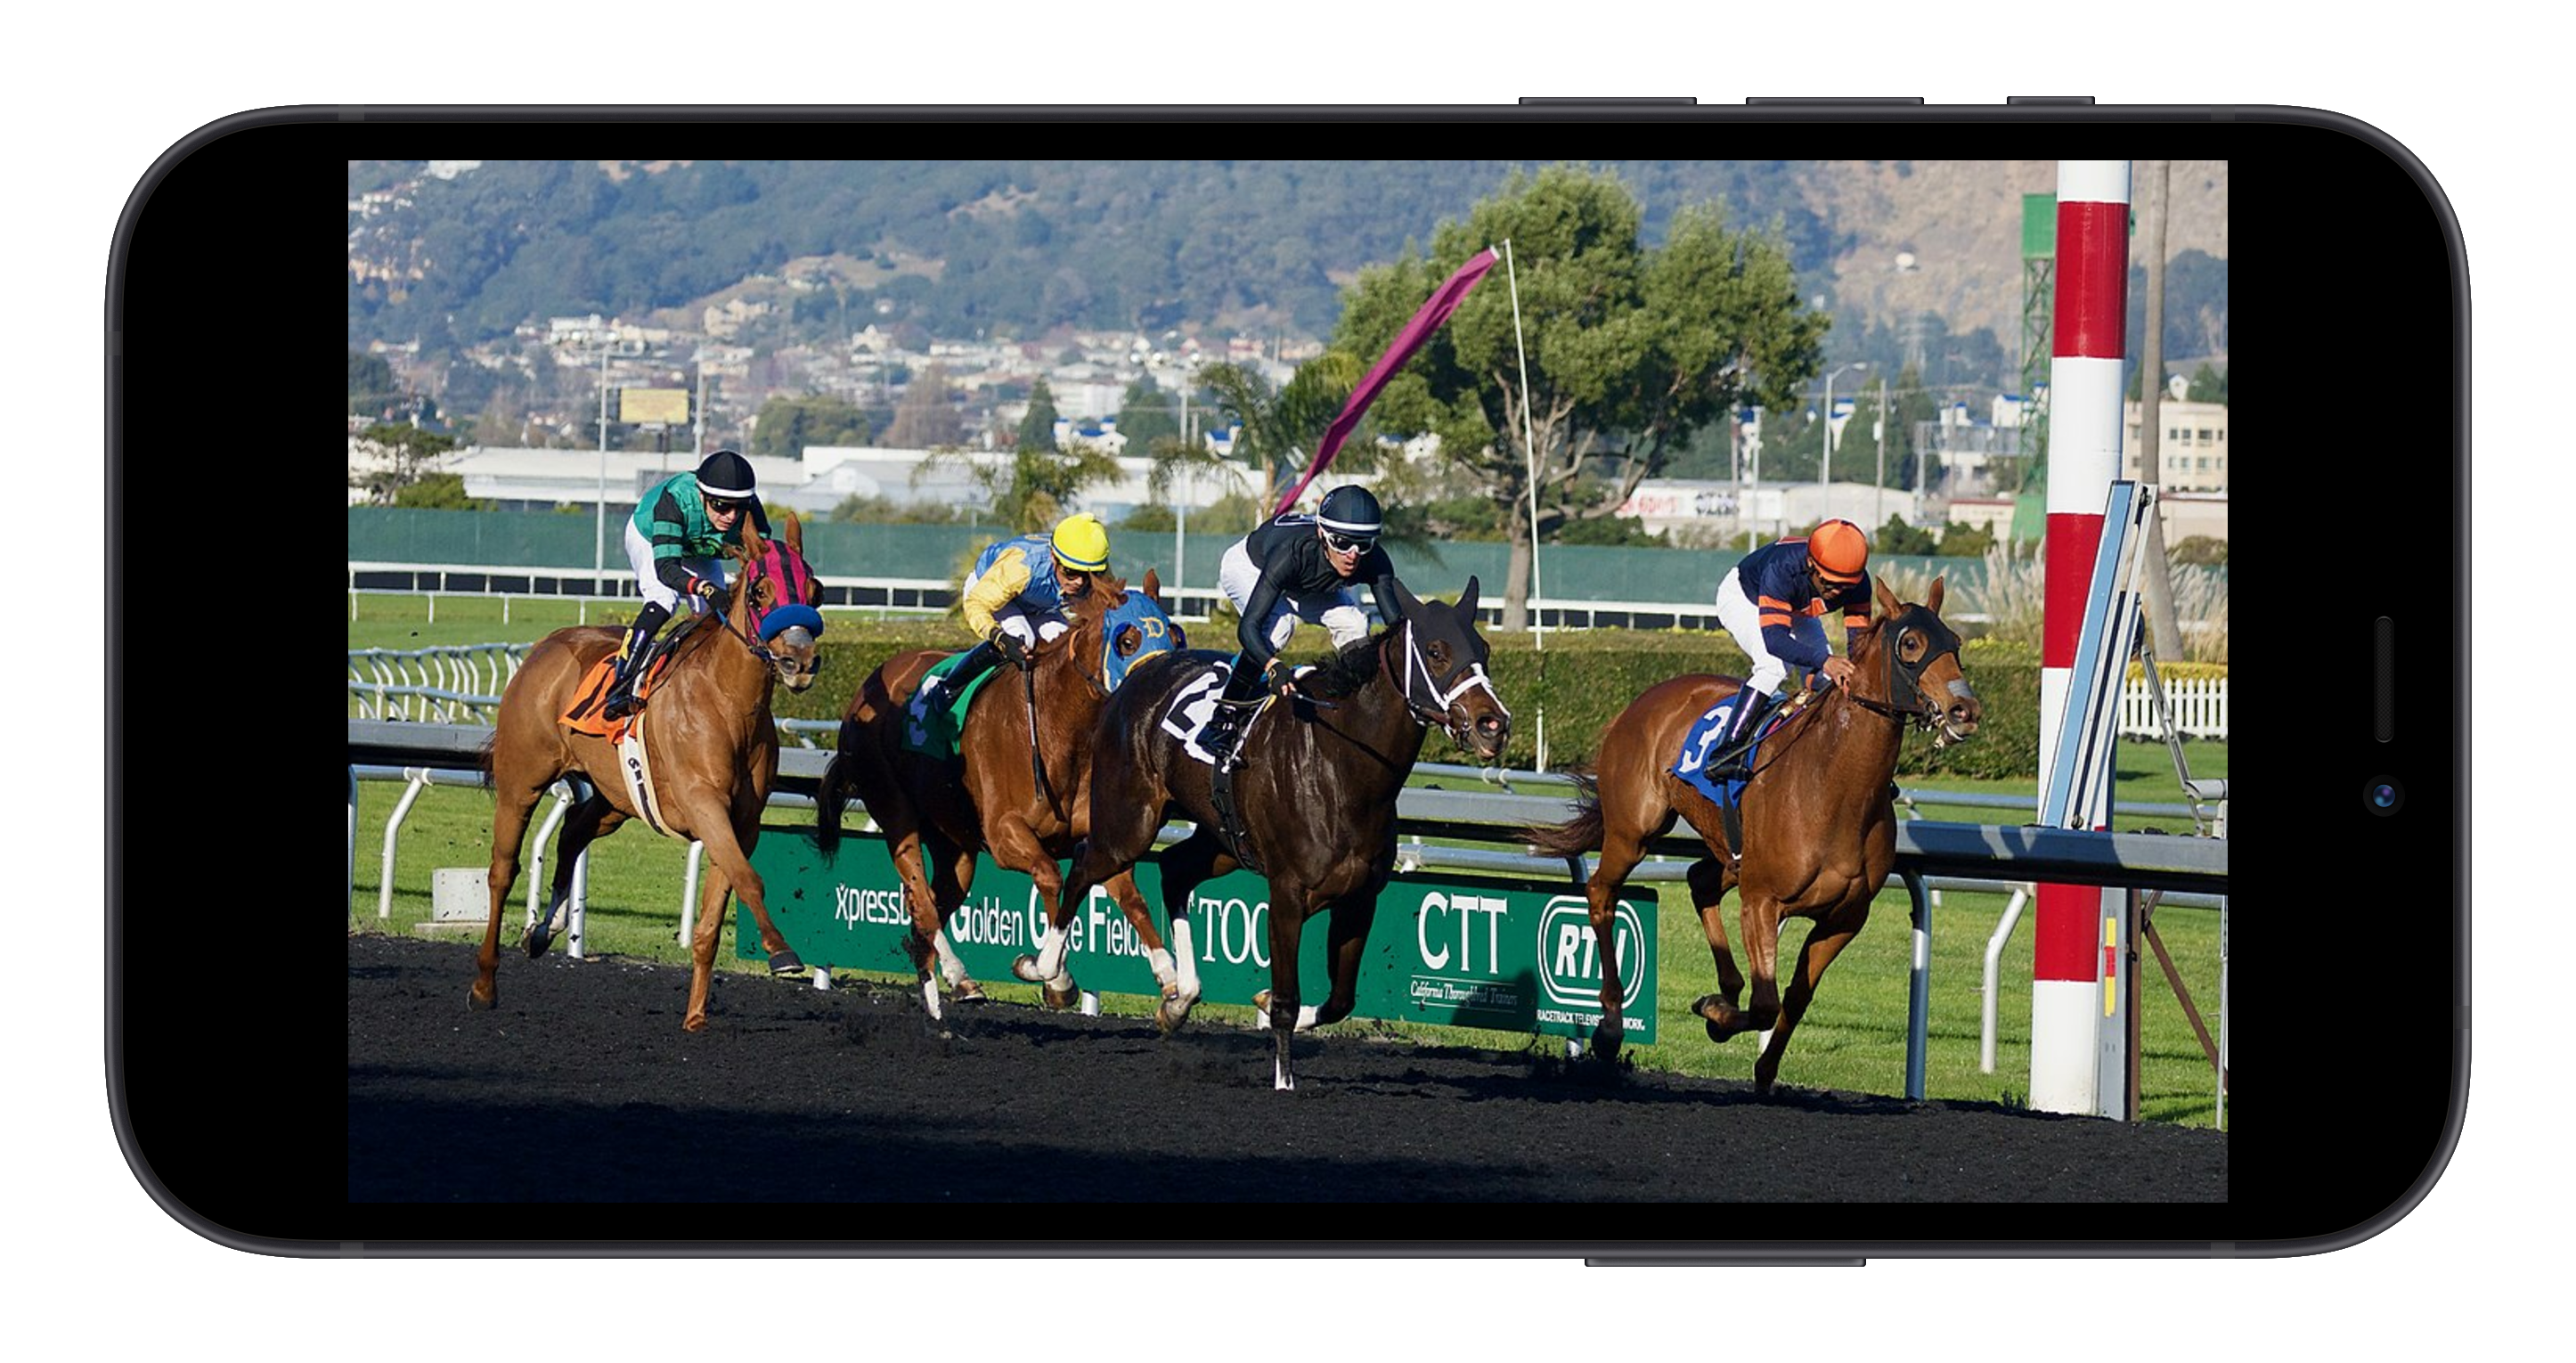 horse racing on a mobile